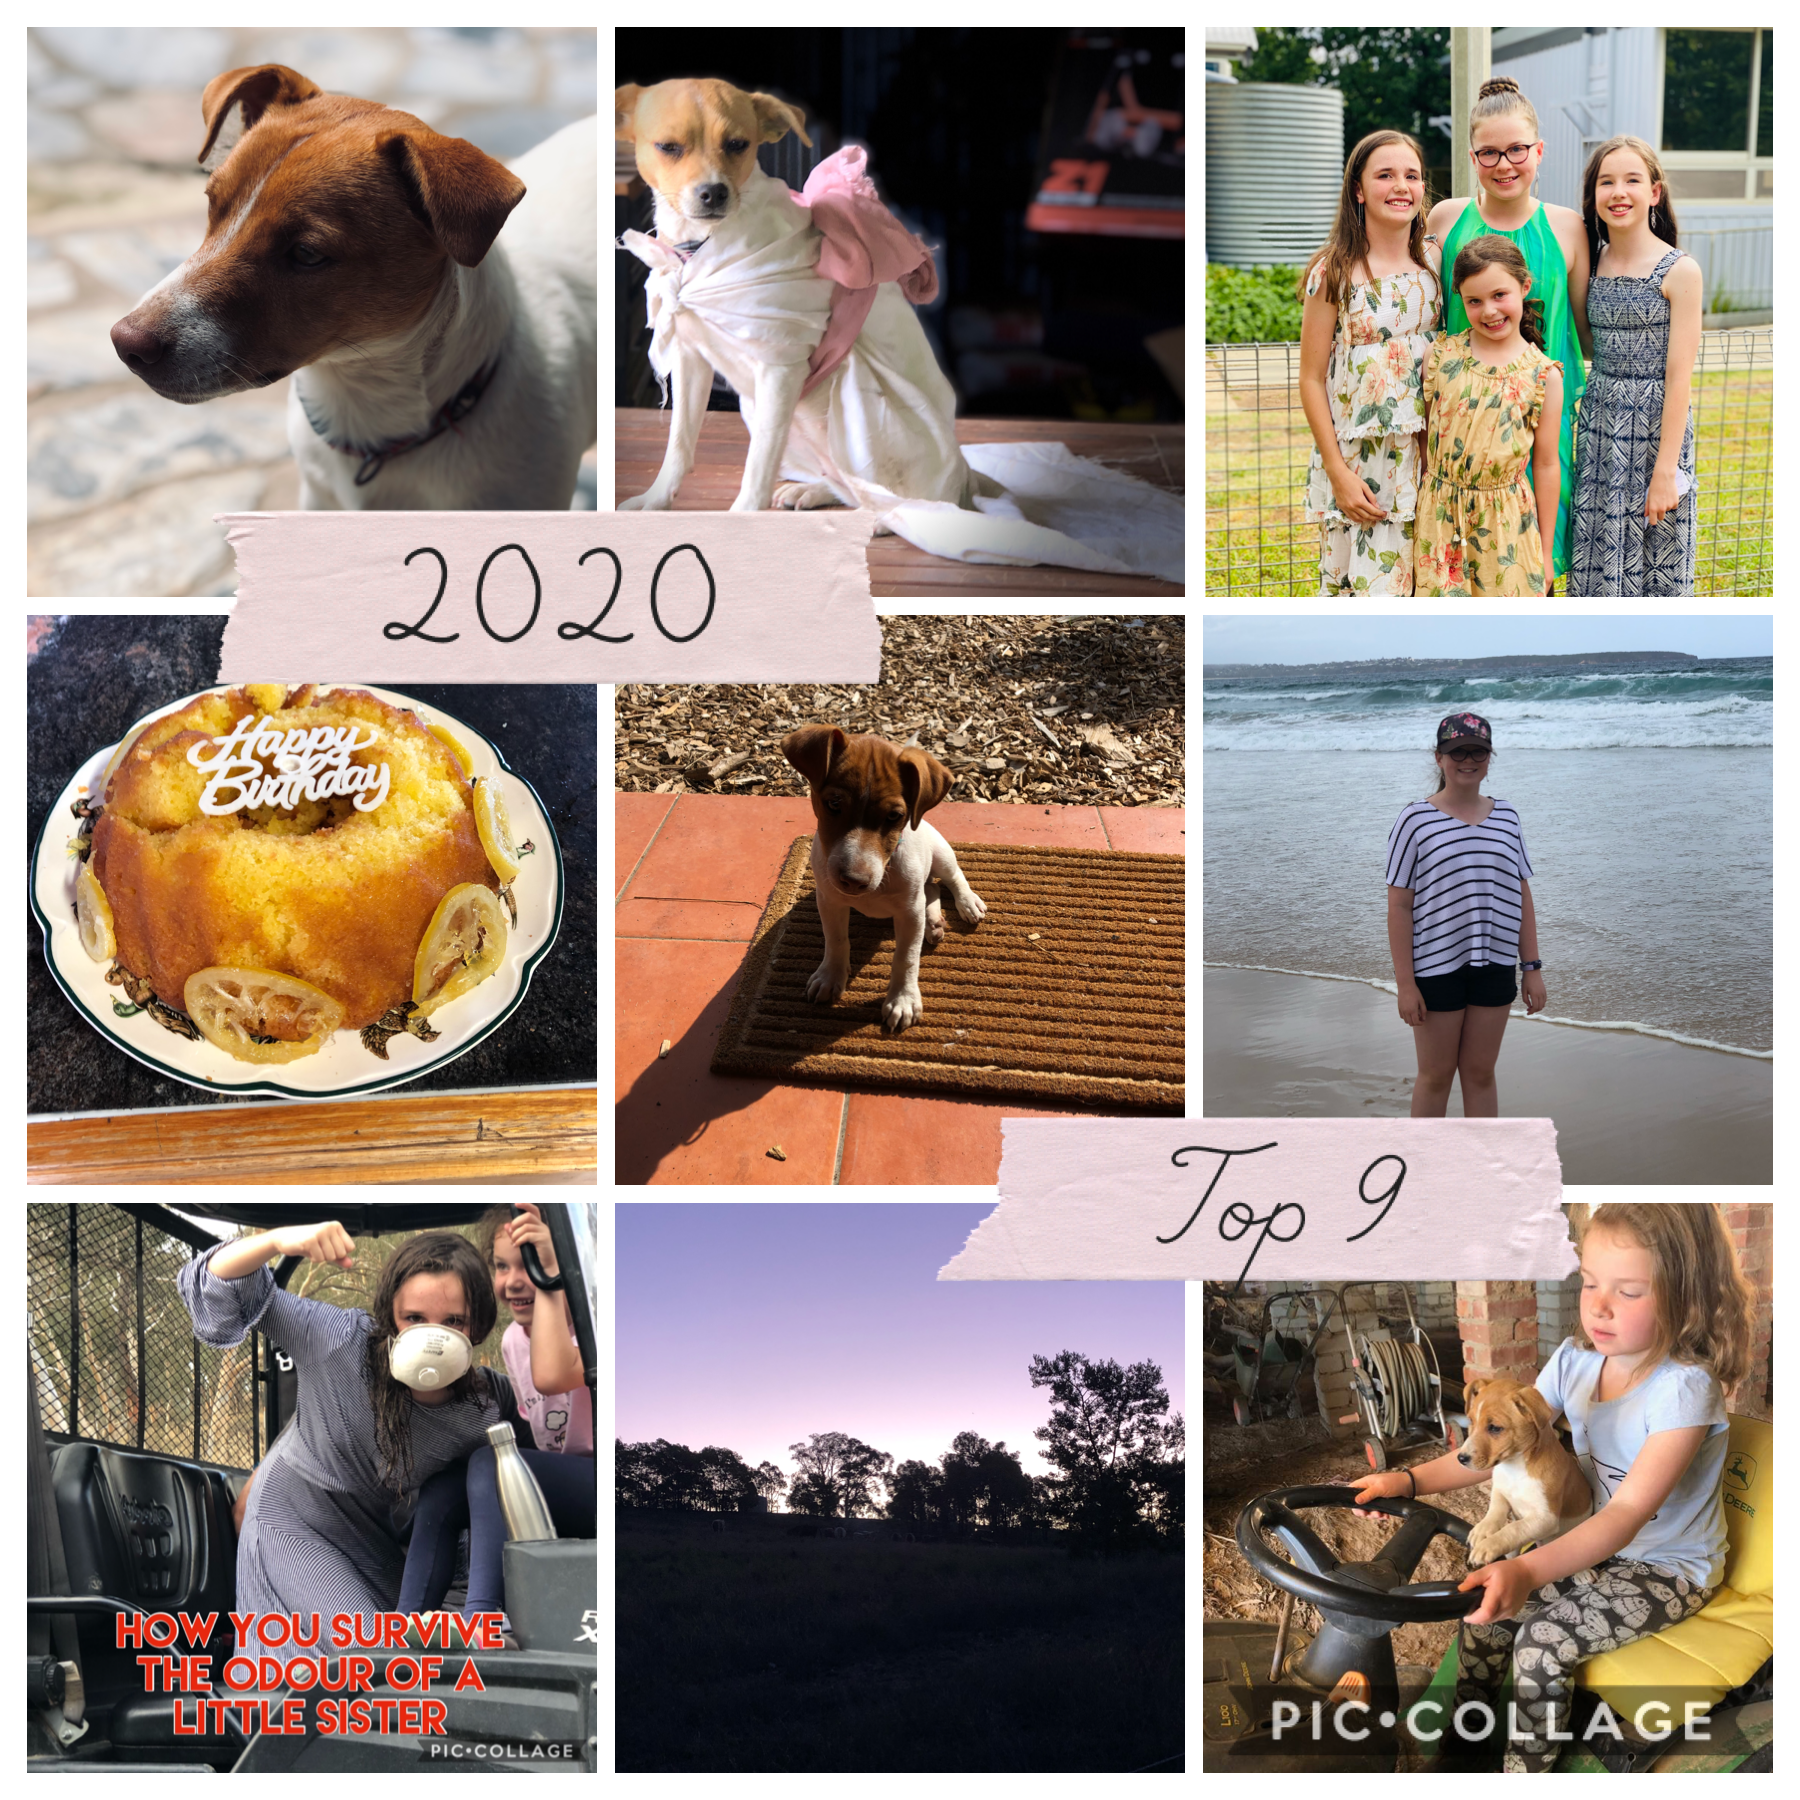 These are my top 9 pictures from 2020. Corona has been tough but we managed to stay strong. I am grateful that I was with my family all year. How do you feel about the year that has been and is almost gone? #familytime